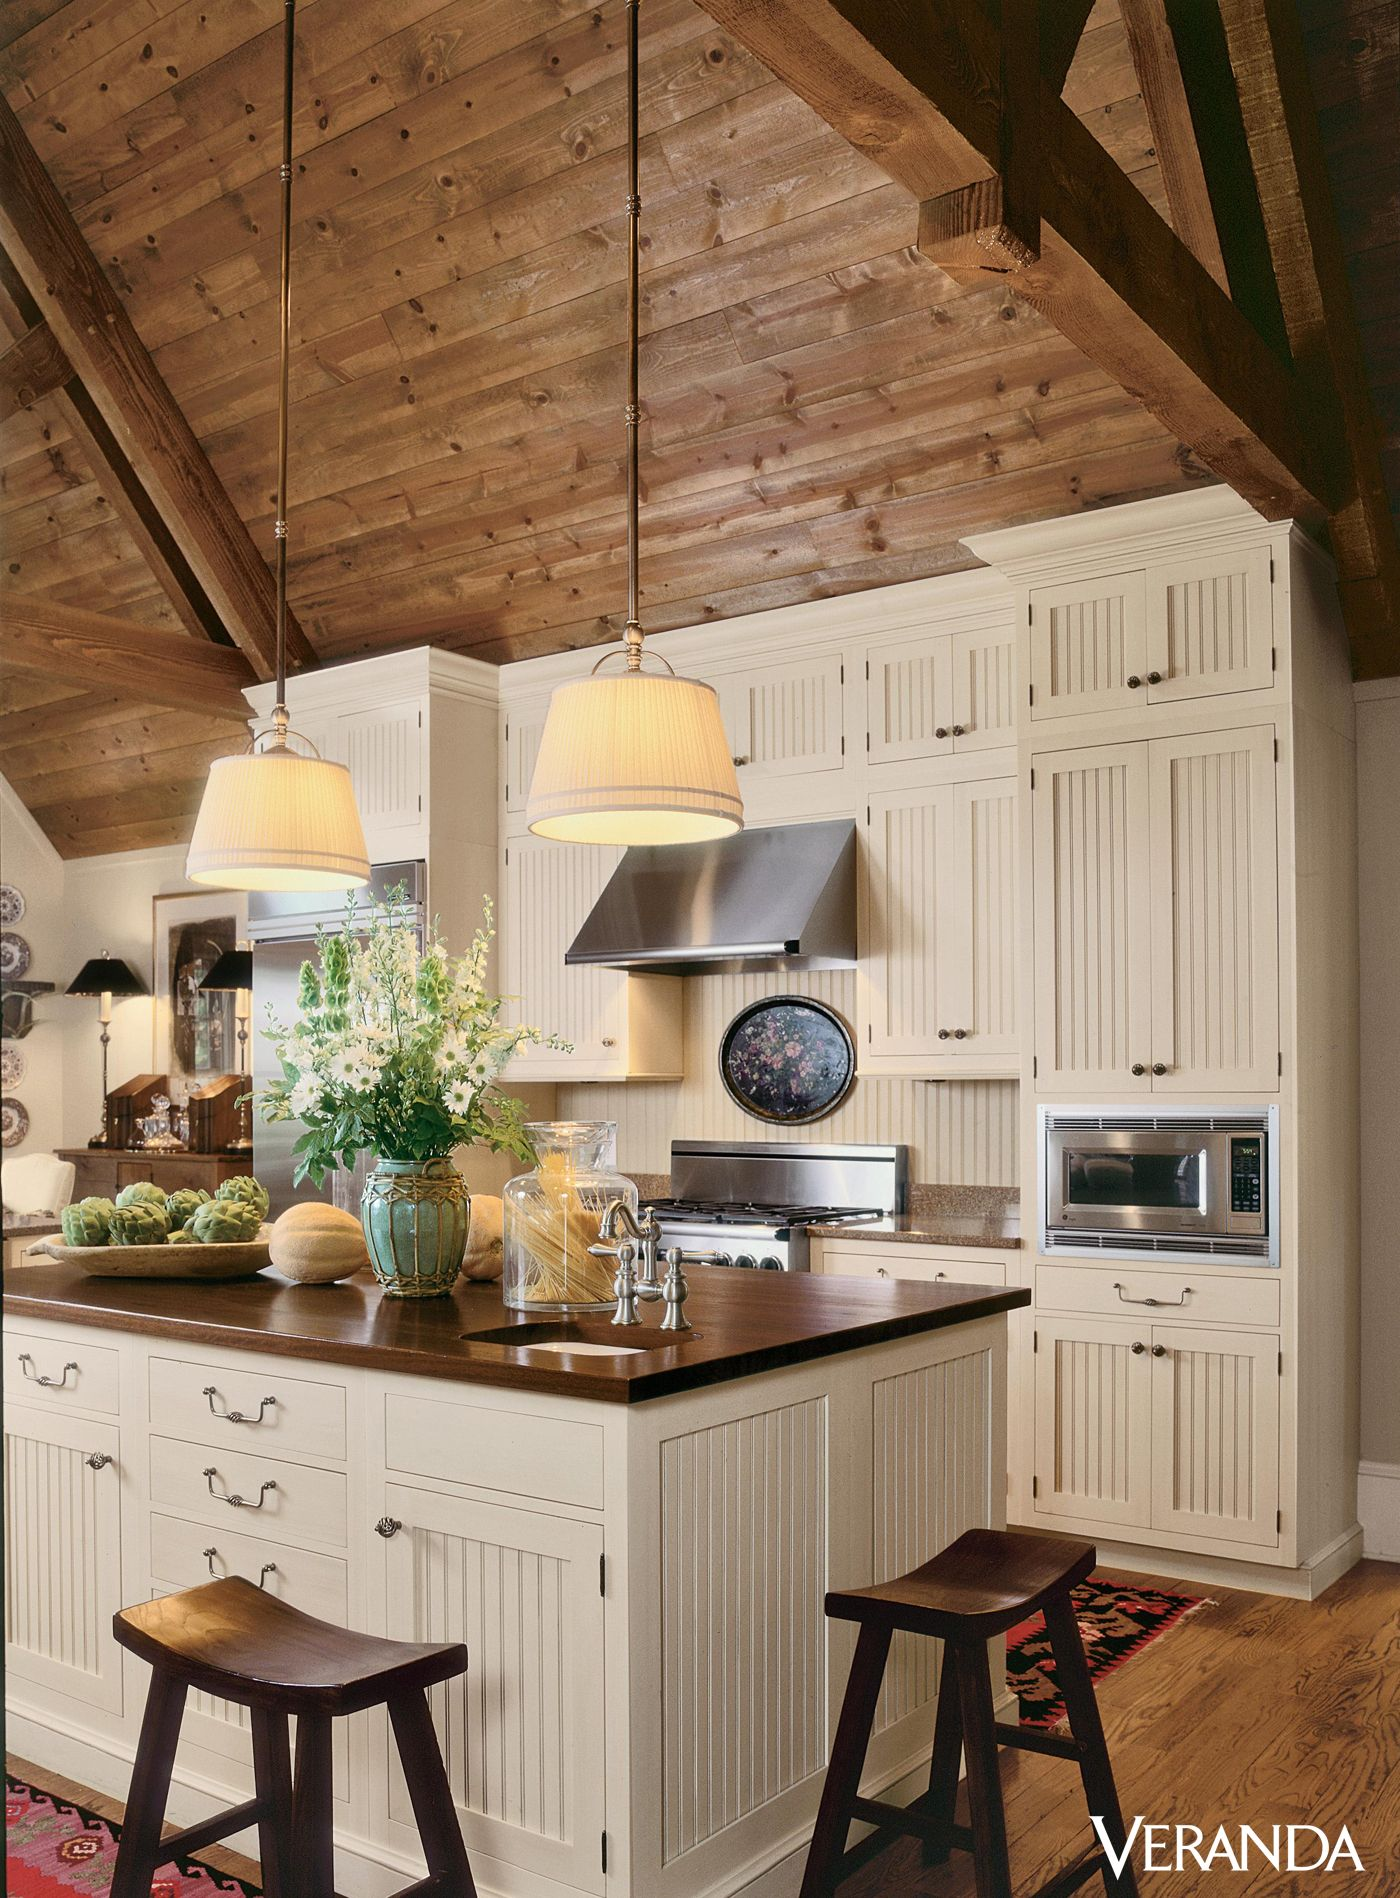 This rustic kitchen features a sloped wooden